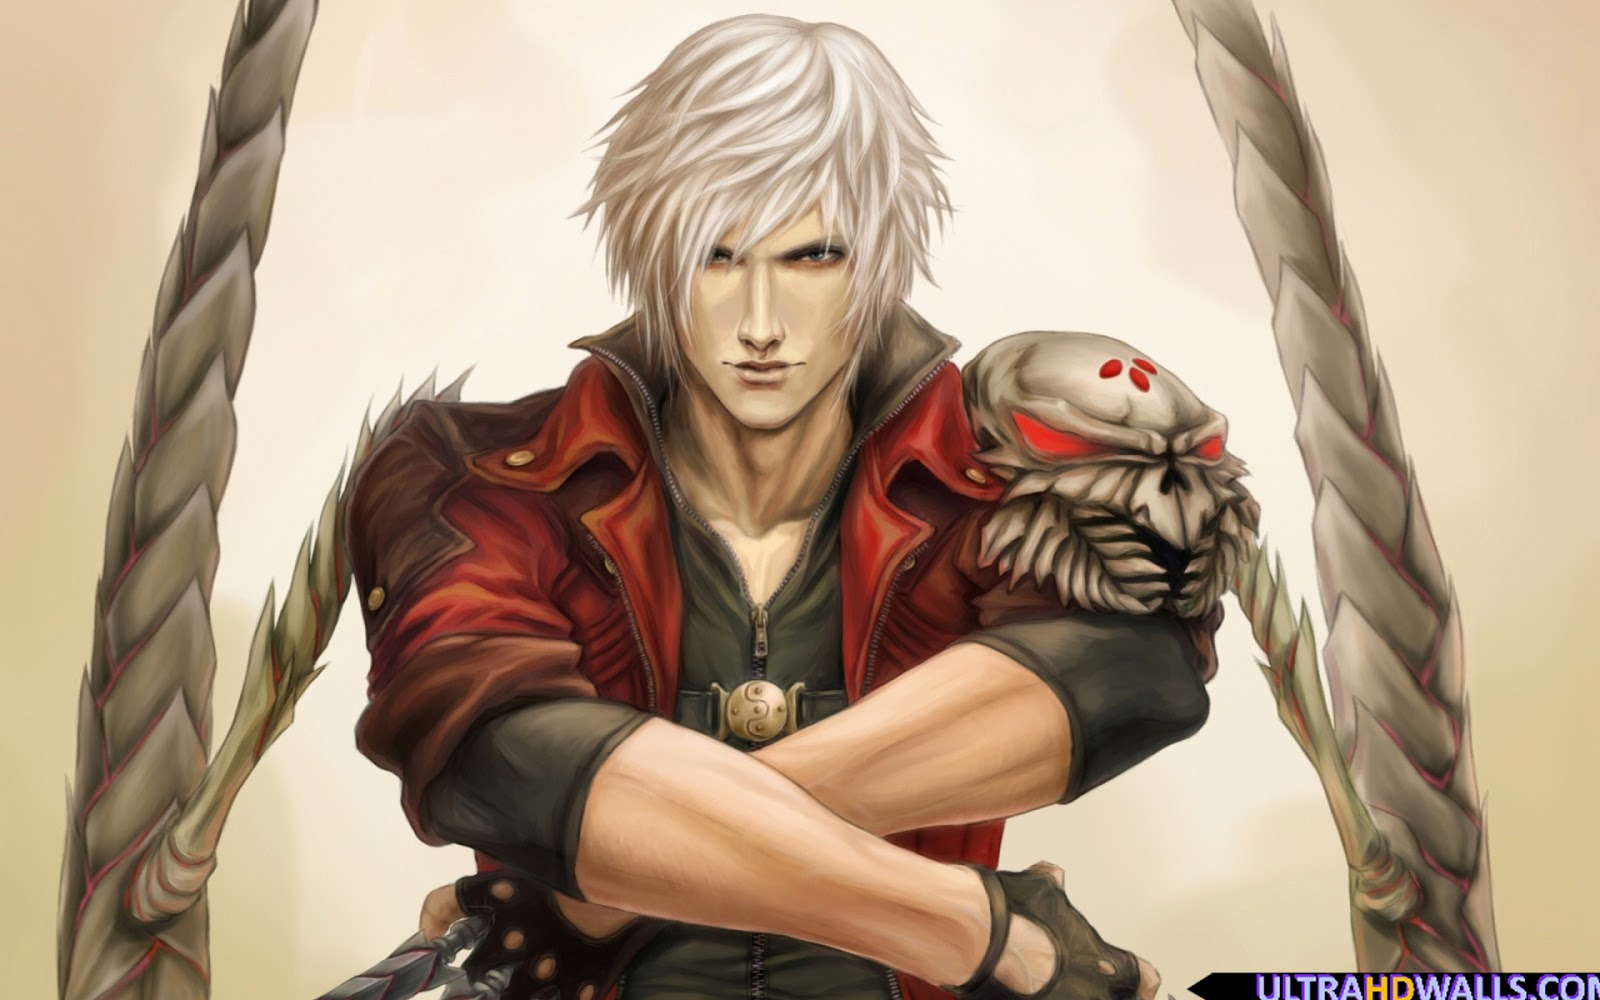 Devil May Cry Hd Wallpapers Collections Hd Wallpaper Jos